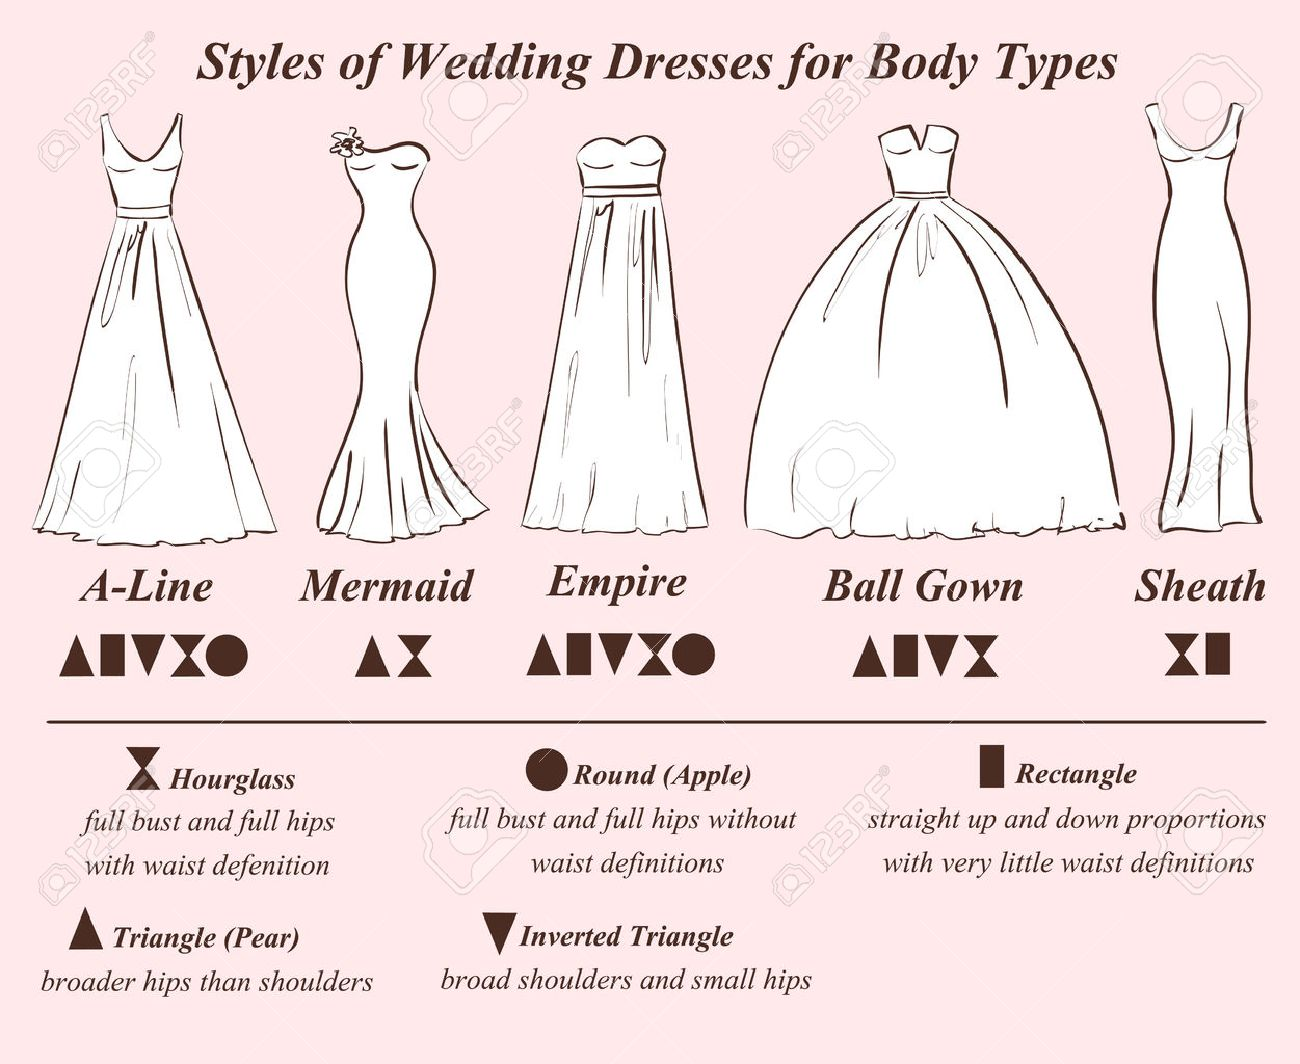 29186 wedding dress stock vector illustration and royalty free set of wedding dress styles for female body shape types wedding dress infographic junglespirit Image collections